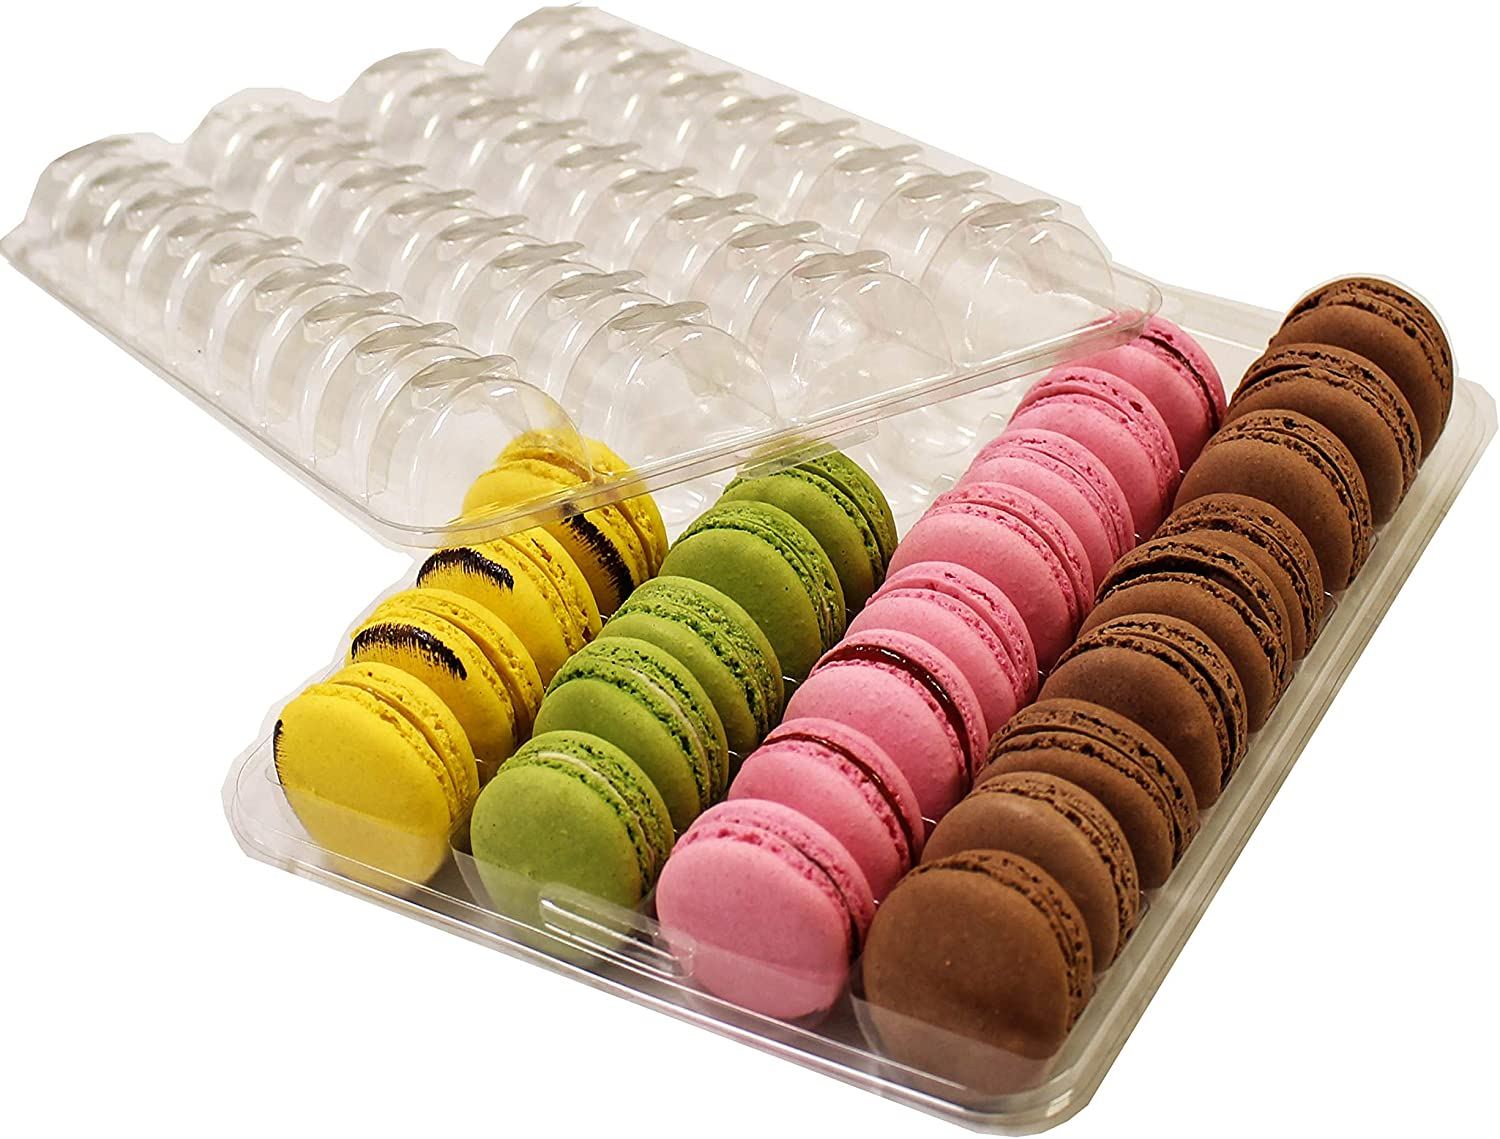 Clear Plastic Closeable French Macaron Storage Trays - Holds 36 Macarons per set - Pack of 6 sets - Made in France